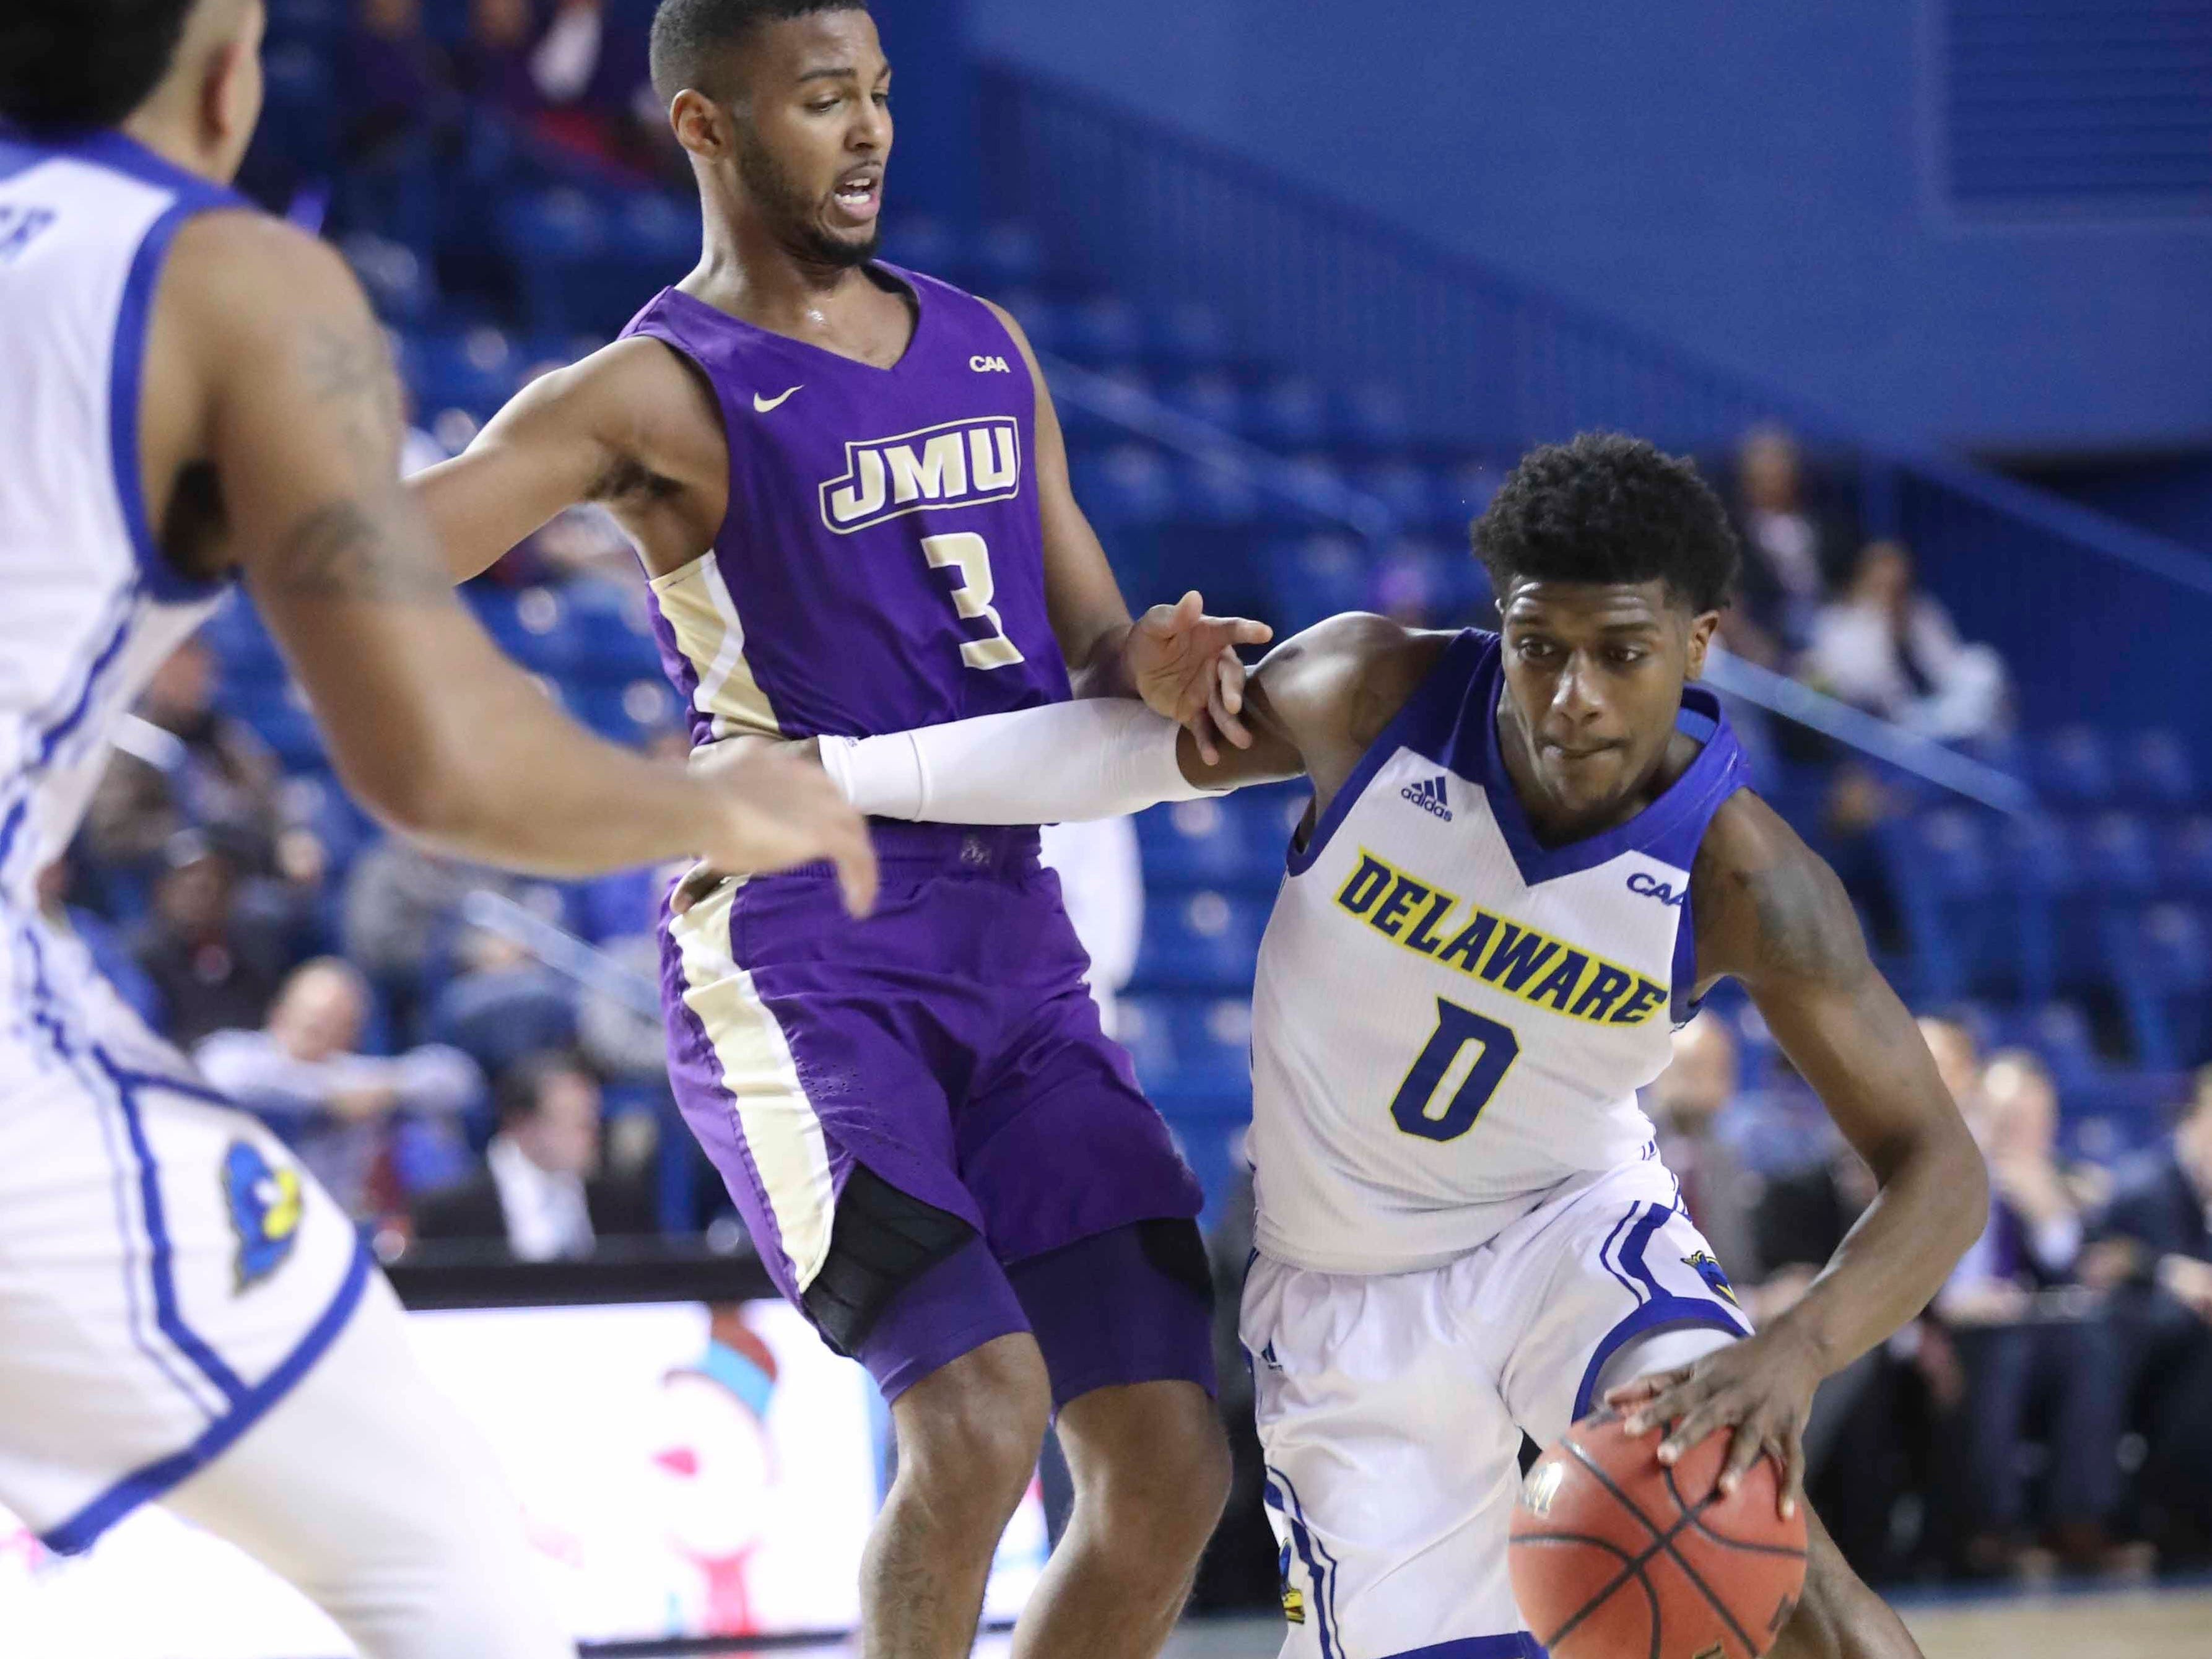 Delaware's Ryan Allen gets past James Madison's Stuckey Mosley in the second half of the Blue Hens' 76-69 win at the Bob Carpenter Center Thursday.